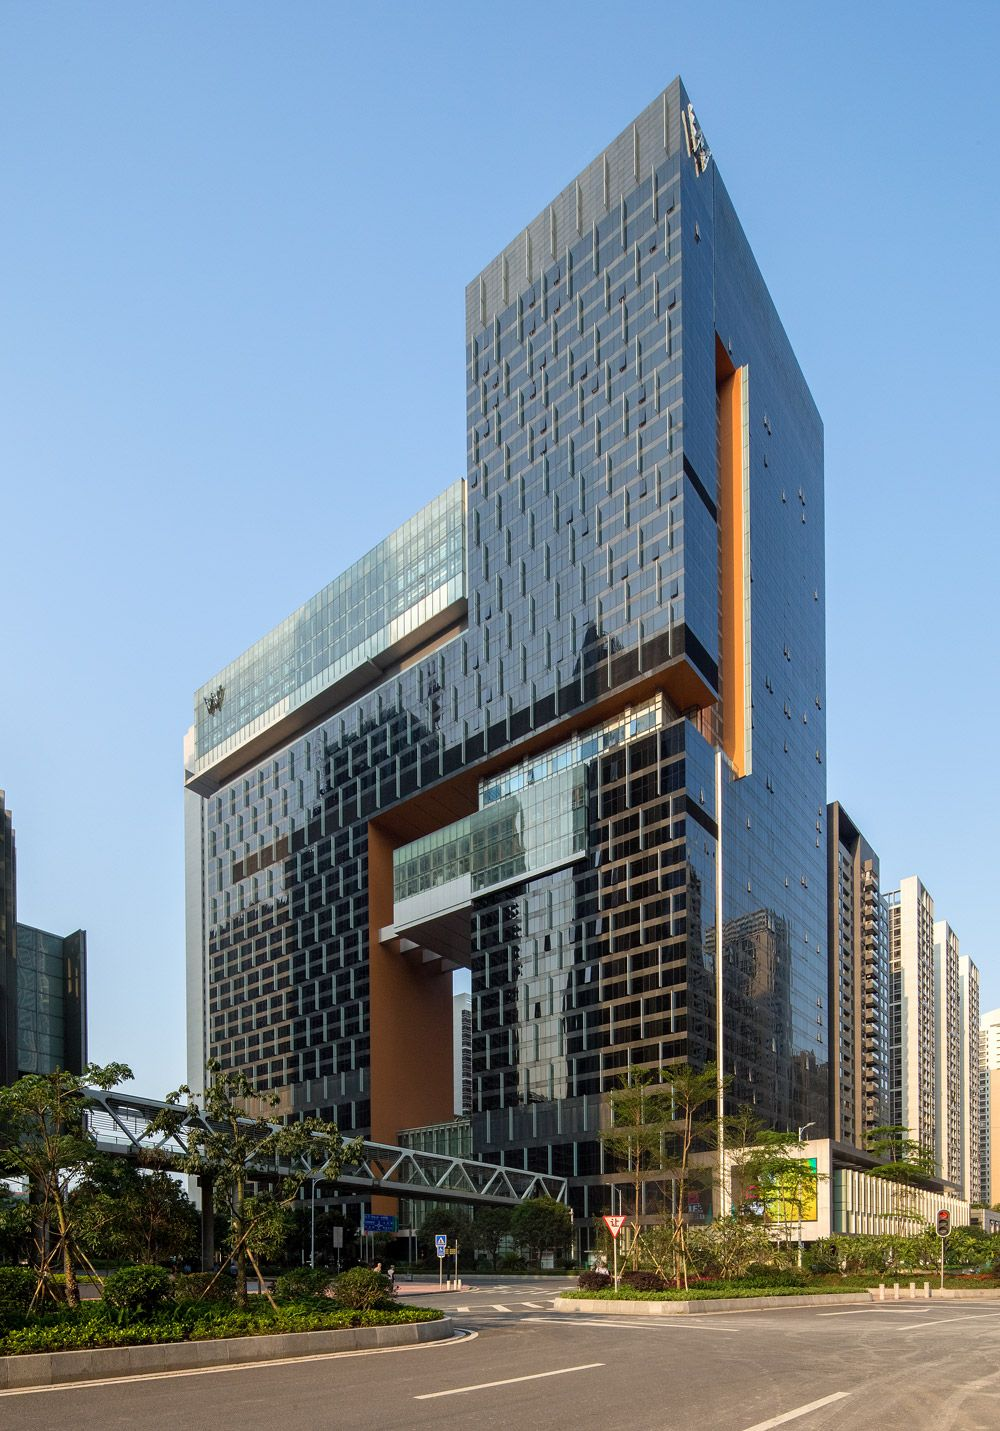 W guangzhou hotel residences location guangzhou china for Arquitectura china moderna